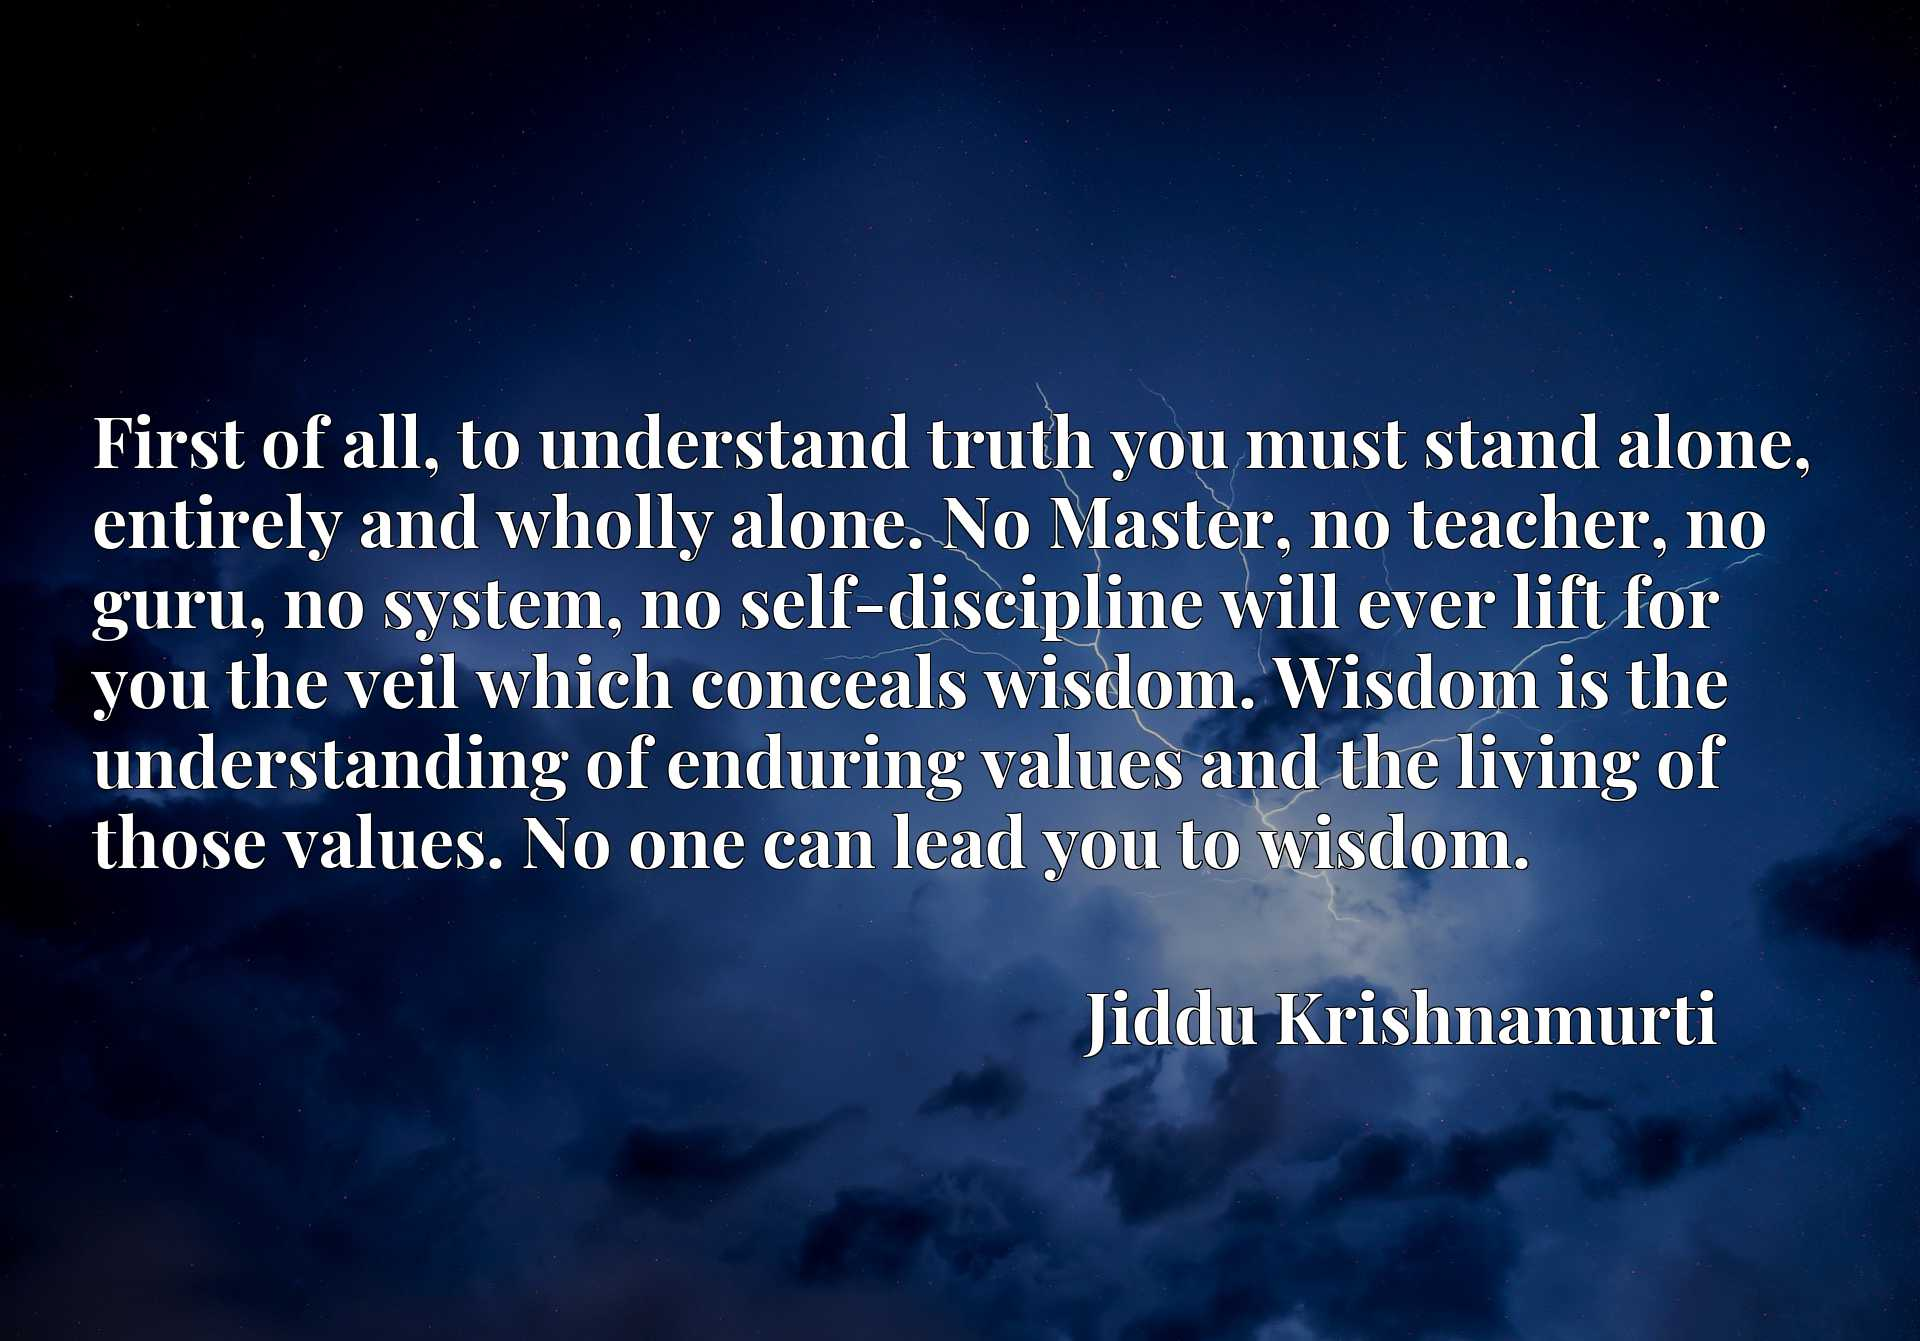 First of all, to understand truth you must stand alone, entirely and wholly alone. No Master, no teacher, no guru, no system, no self-discipline will ever lift for you the veil which conceals wisdom. Wisdom is the understanding of enduring values and the living of those values. No one can lead you to wisdom.